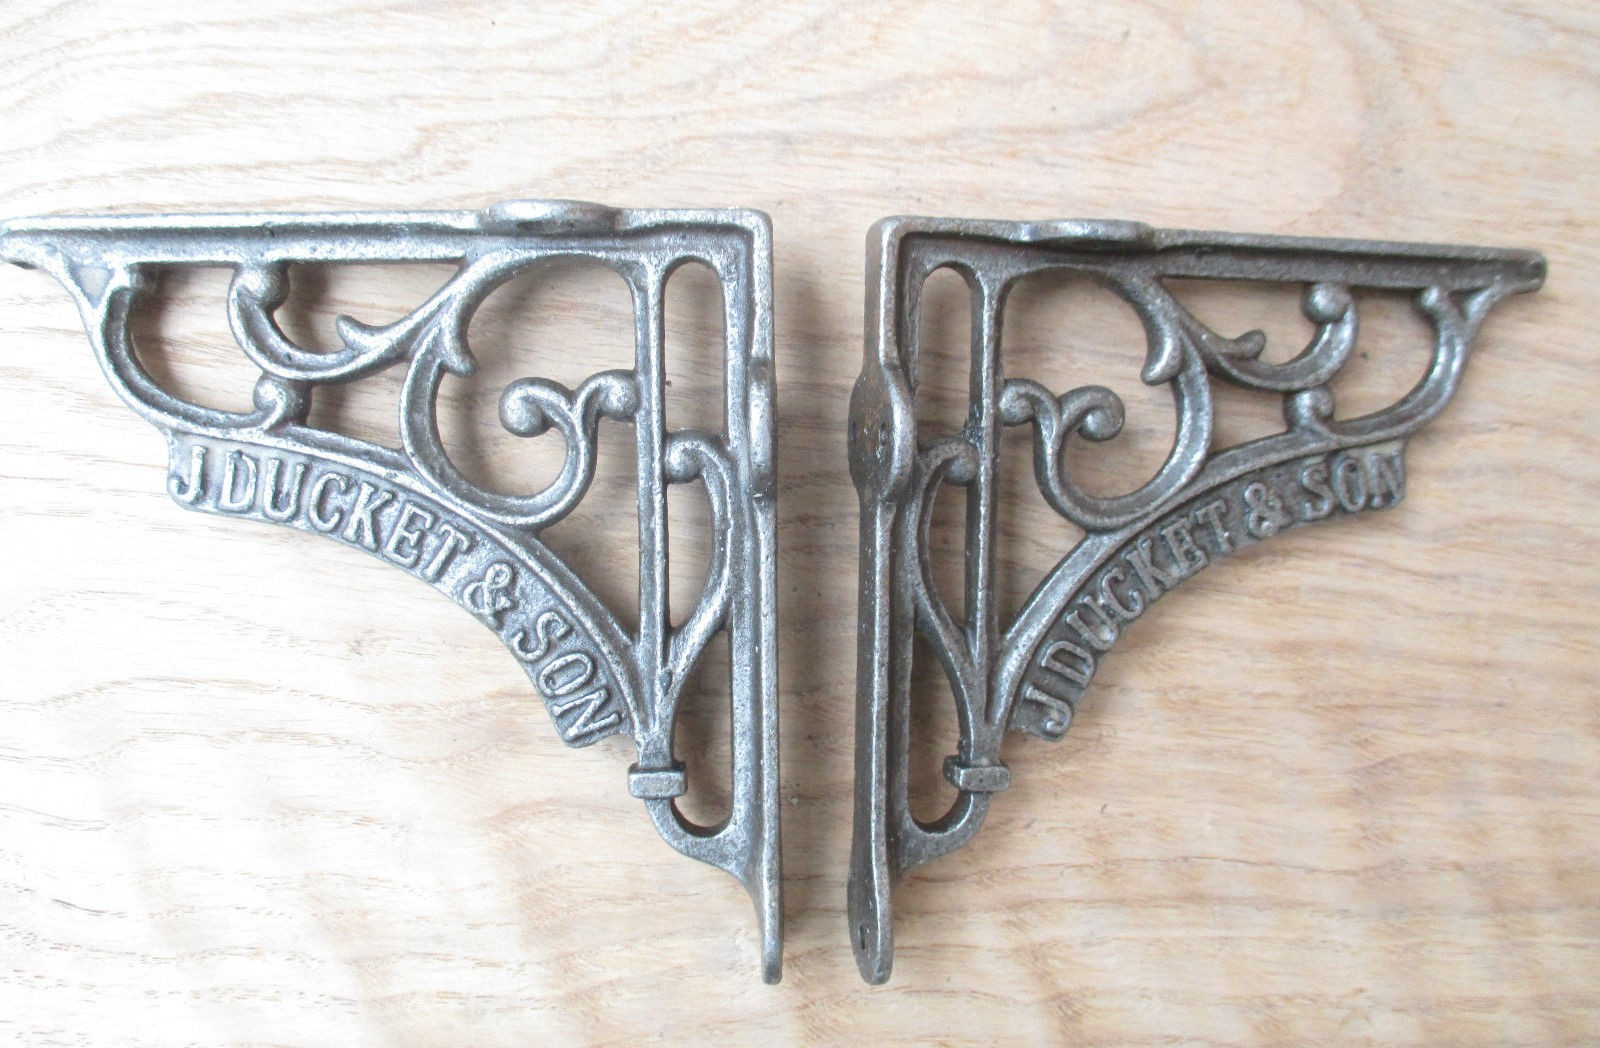 5 Quot Pair Of J Duckett Antique Vintage Cast Iron Shelf